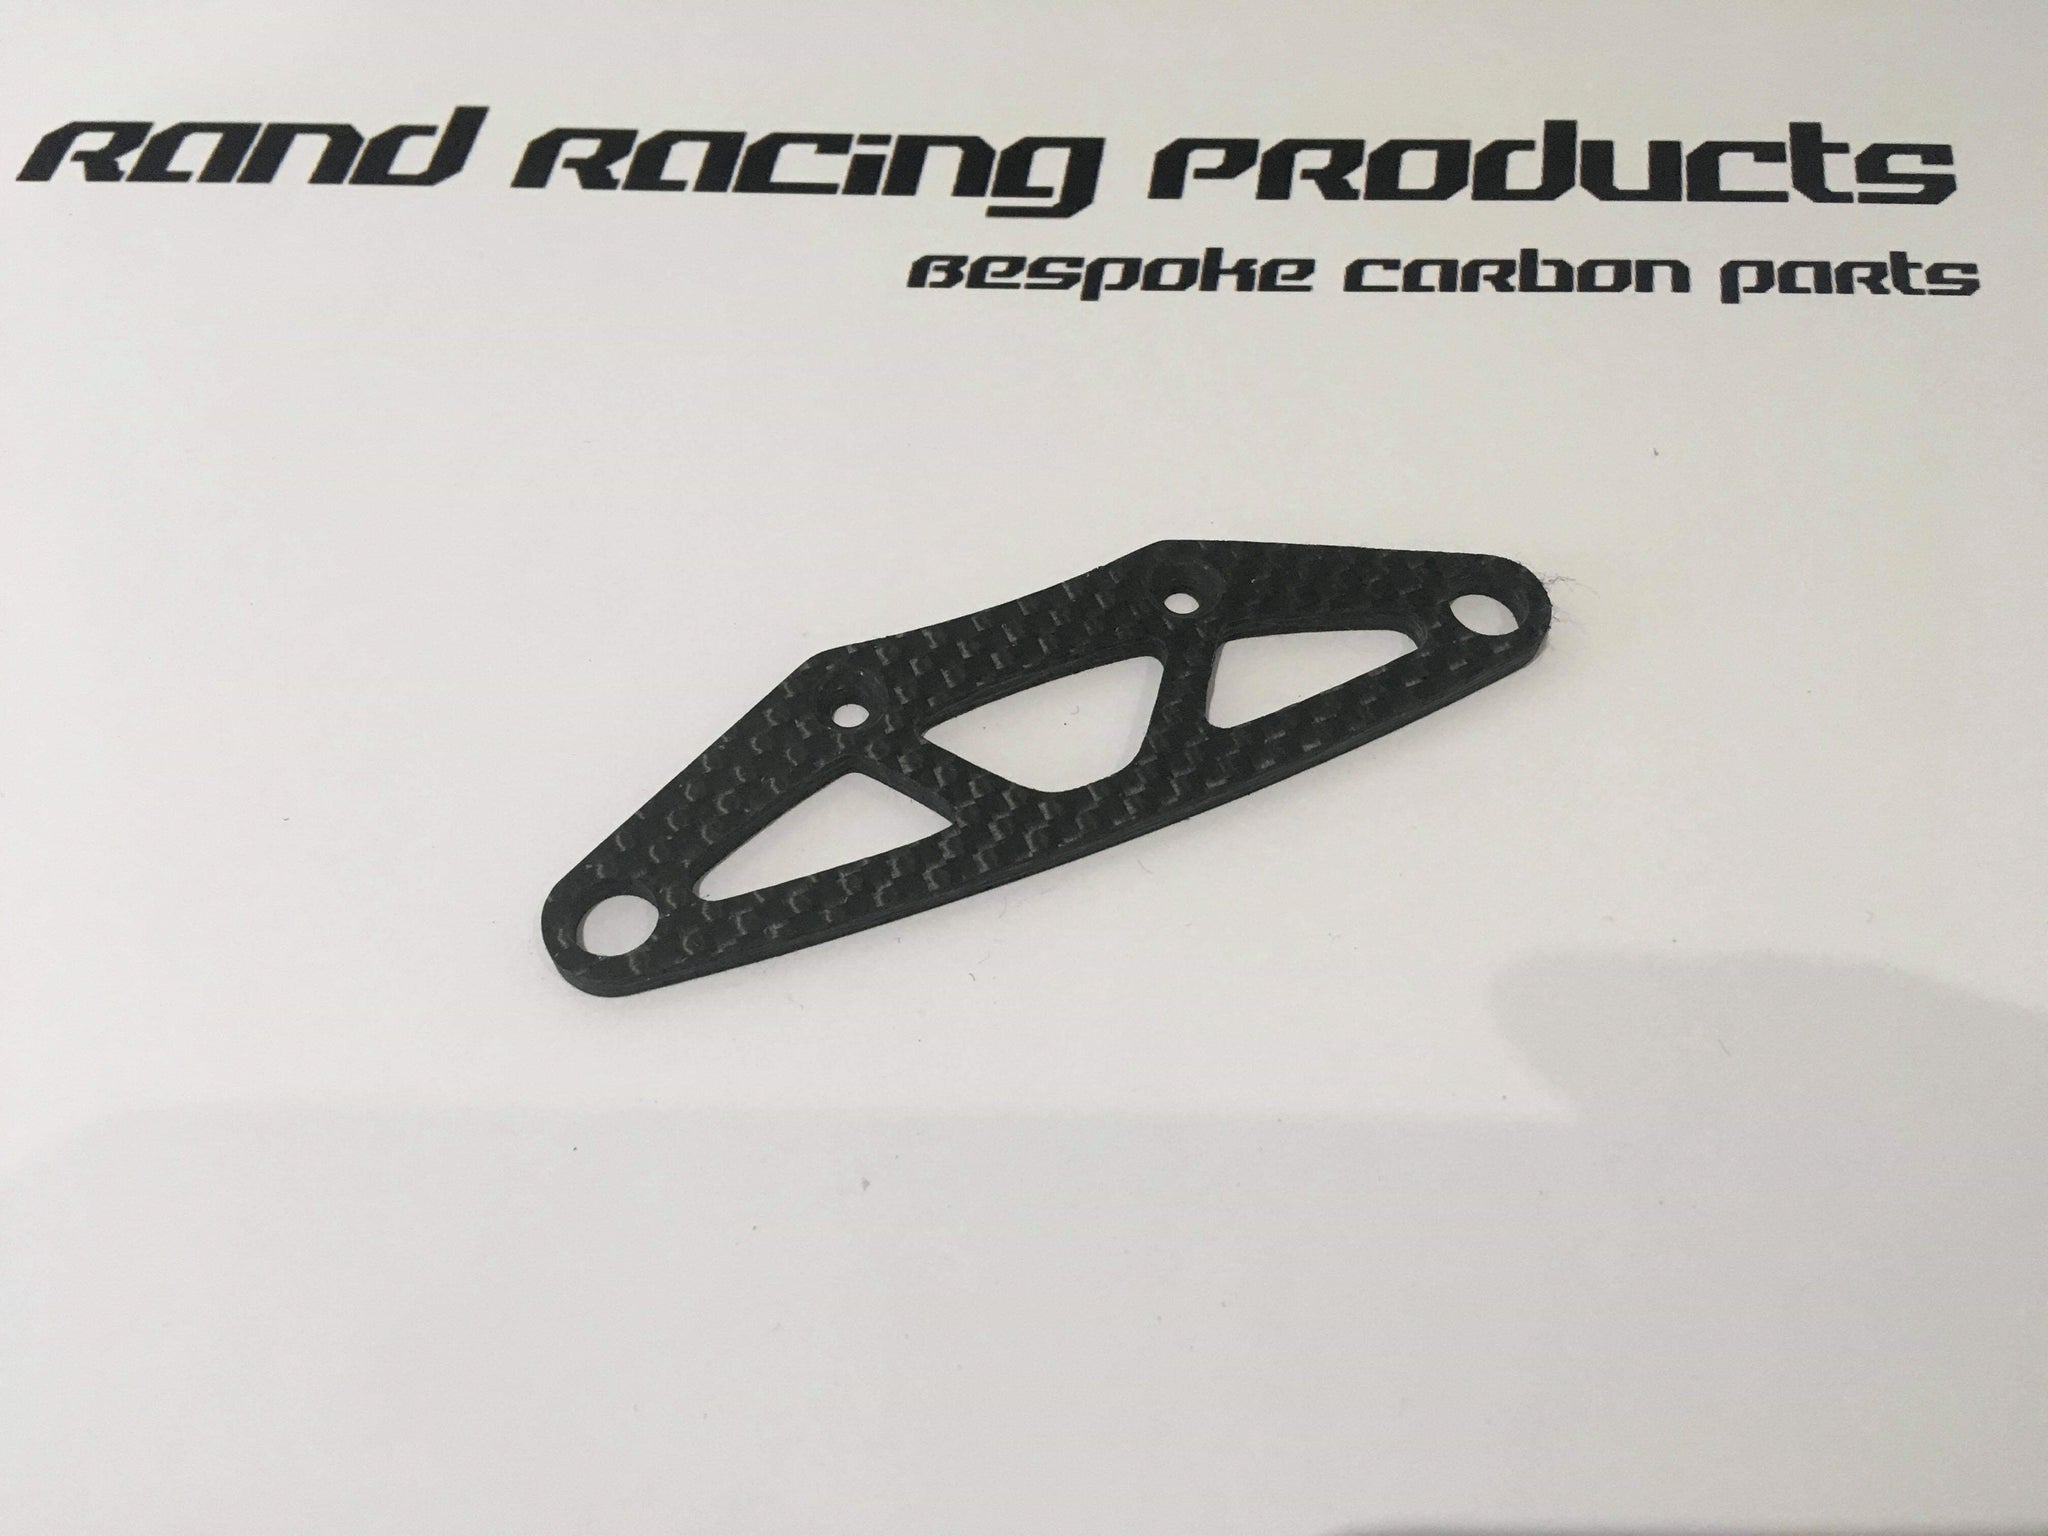 Rand racing products M4 bumper brace